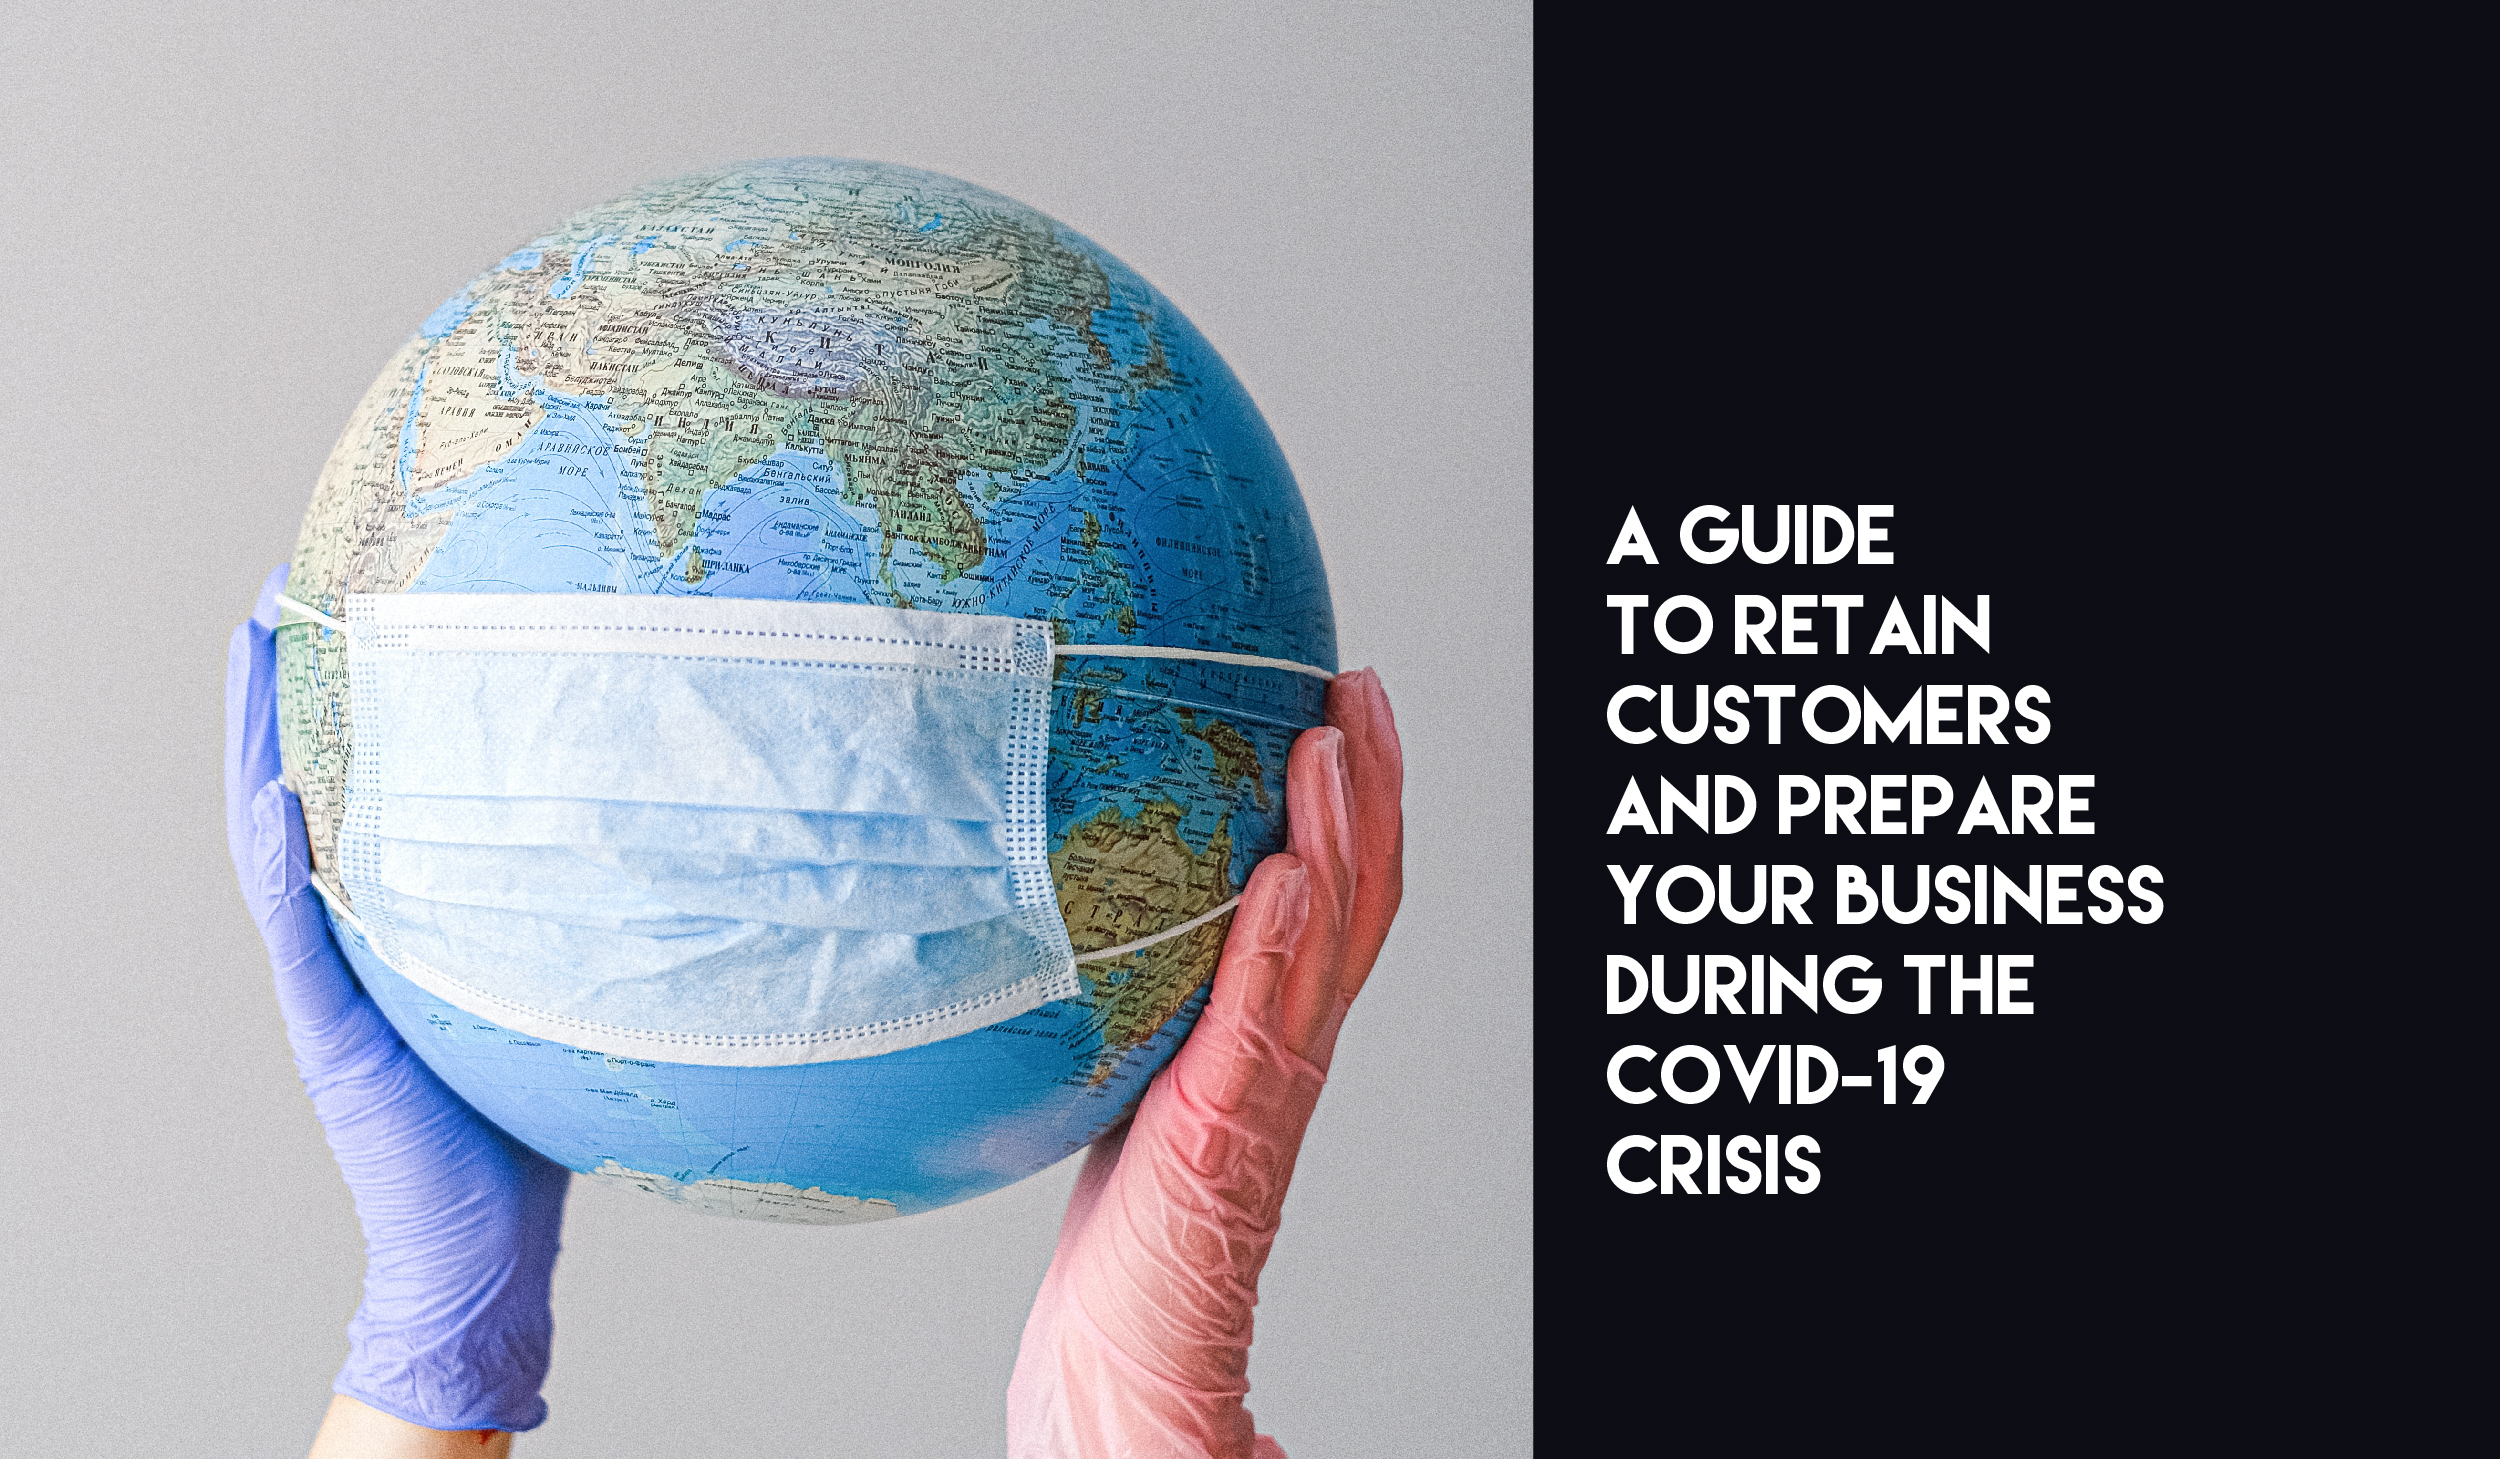 prepare your business during covid19